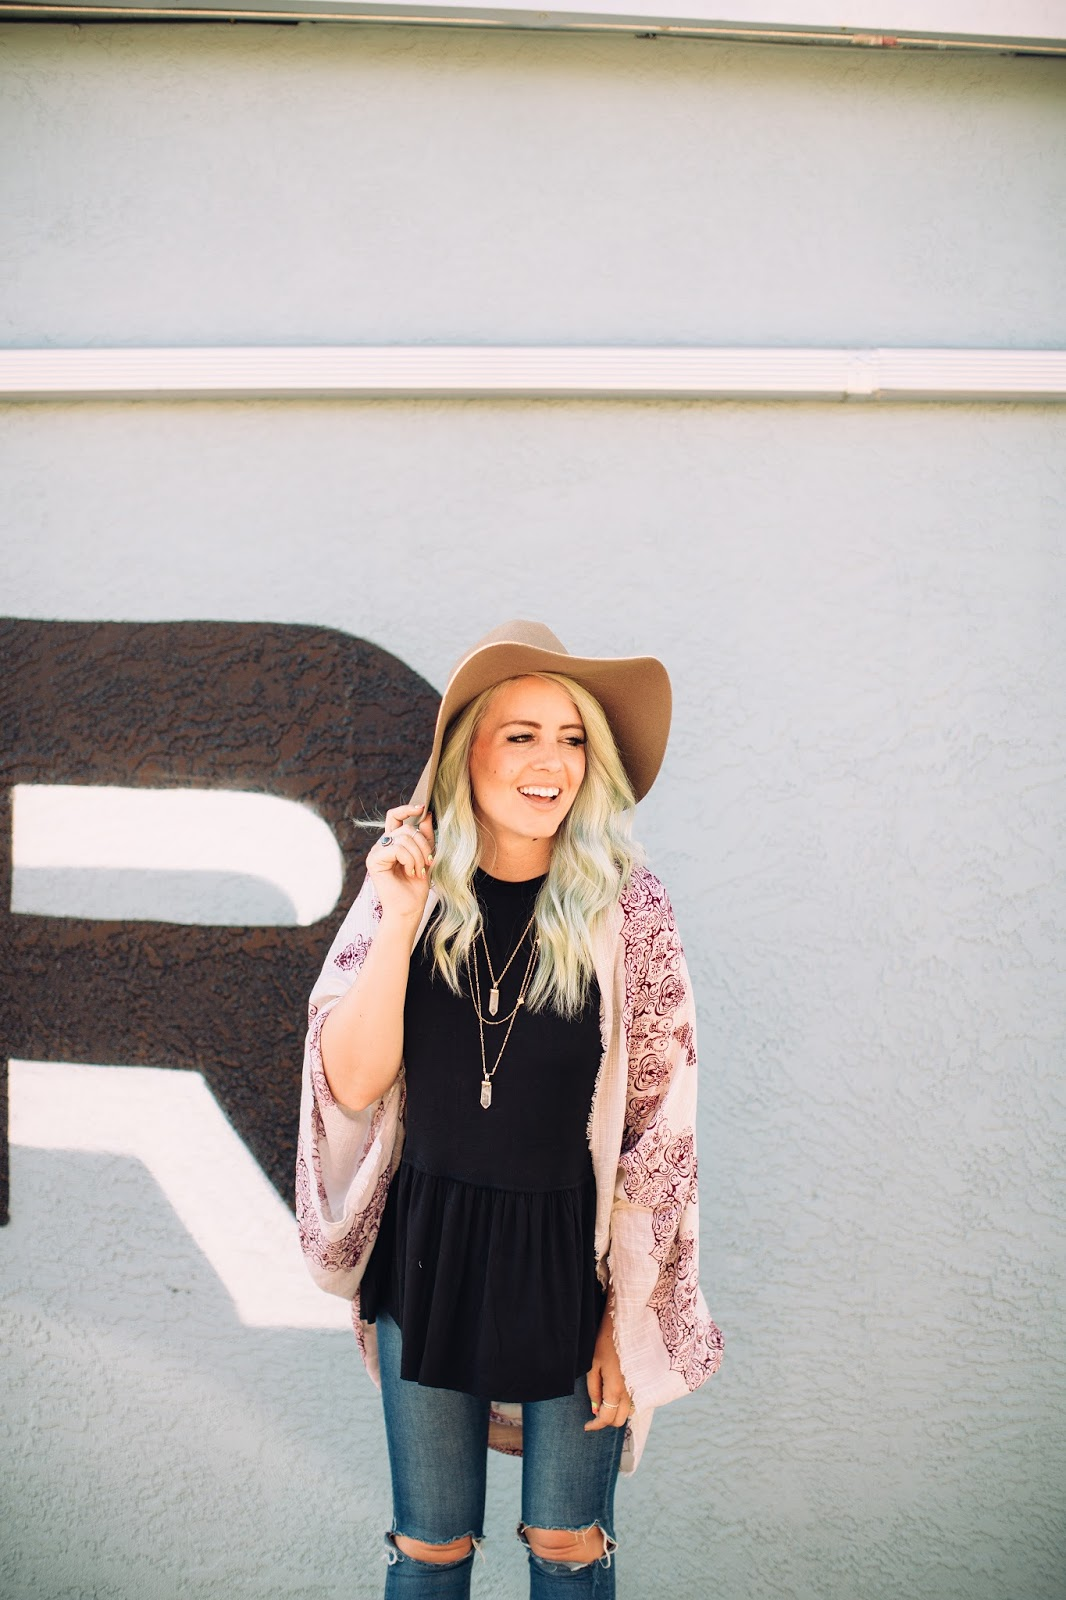 Mint Hair, Black Shirt, Utah Fashion Blogger